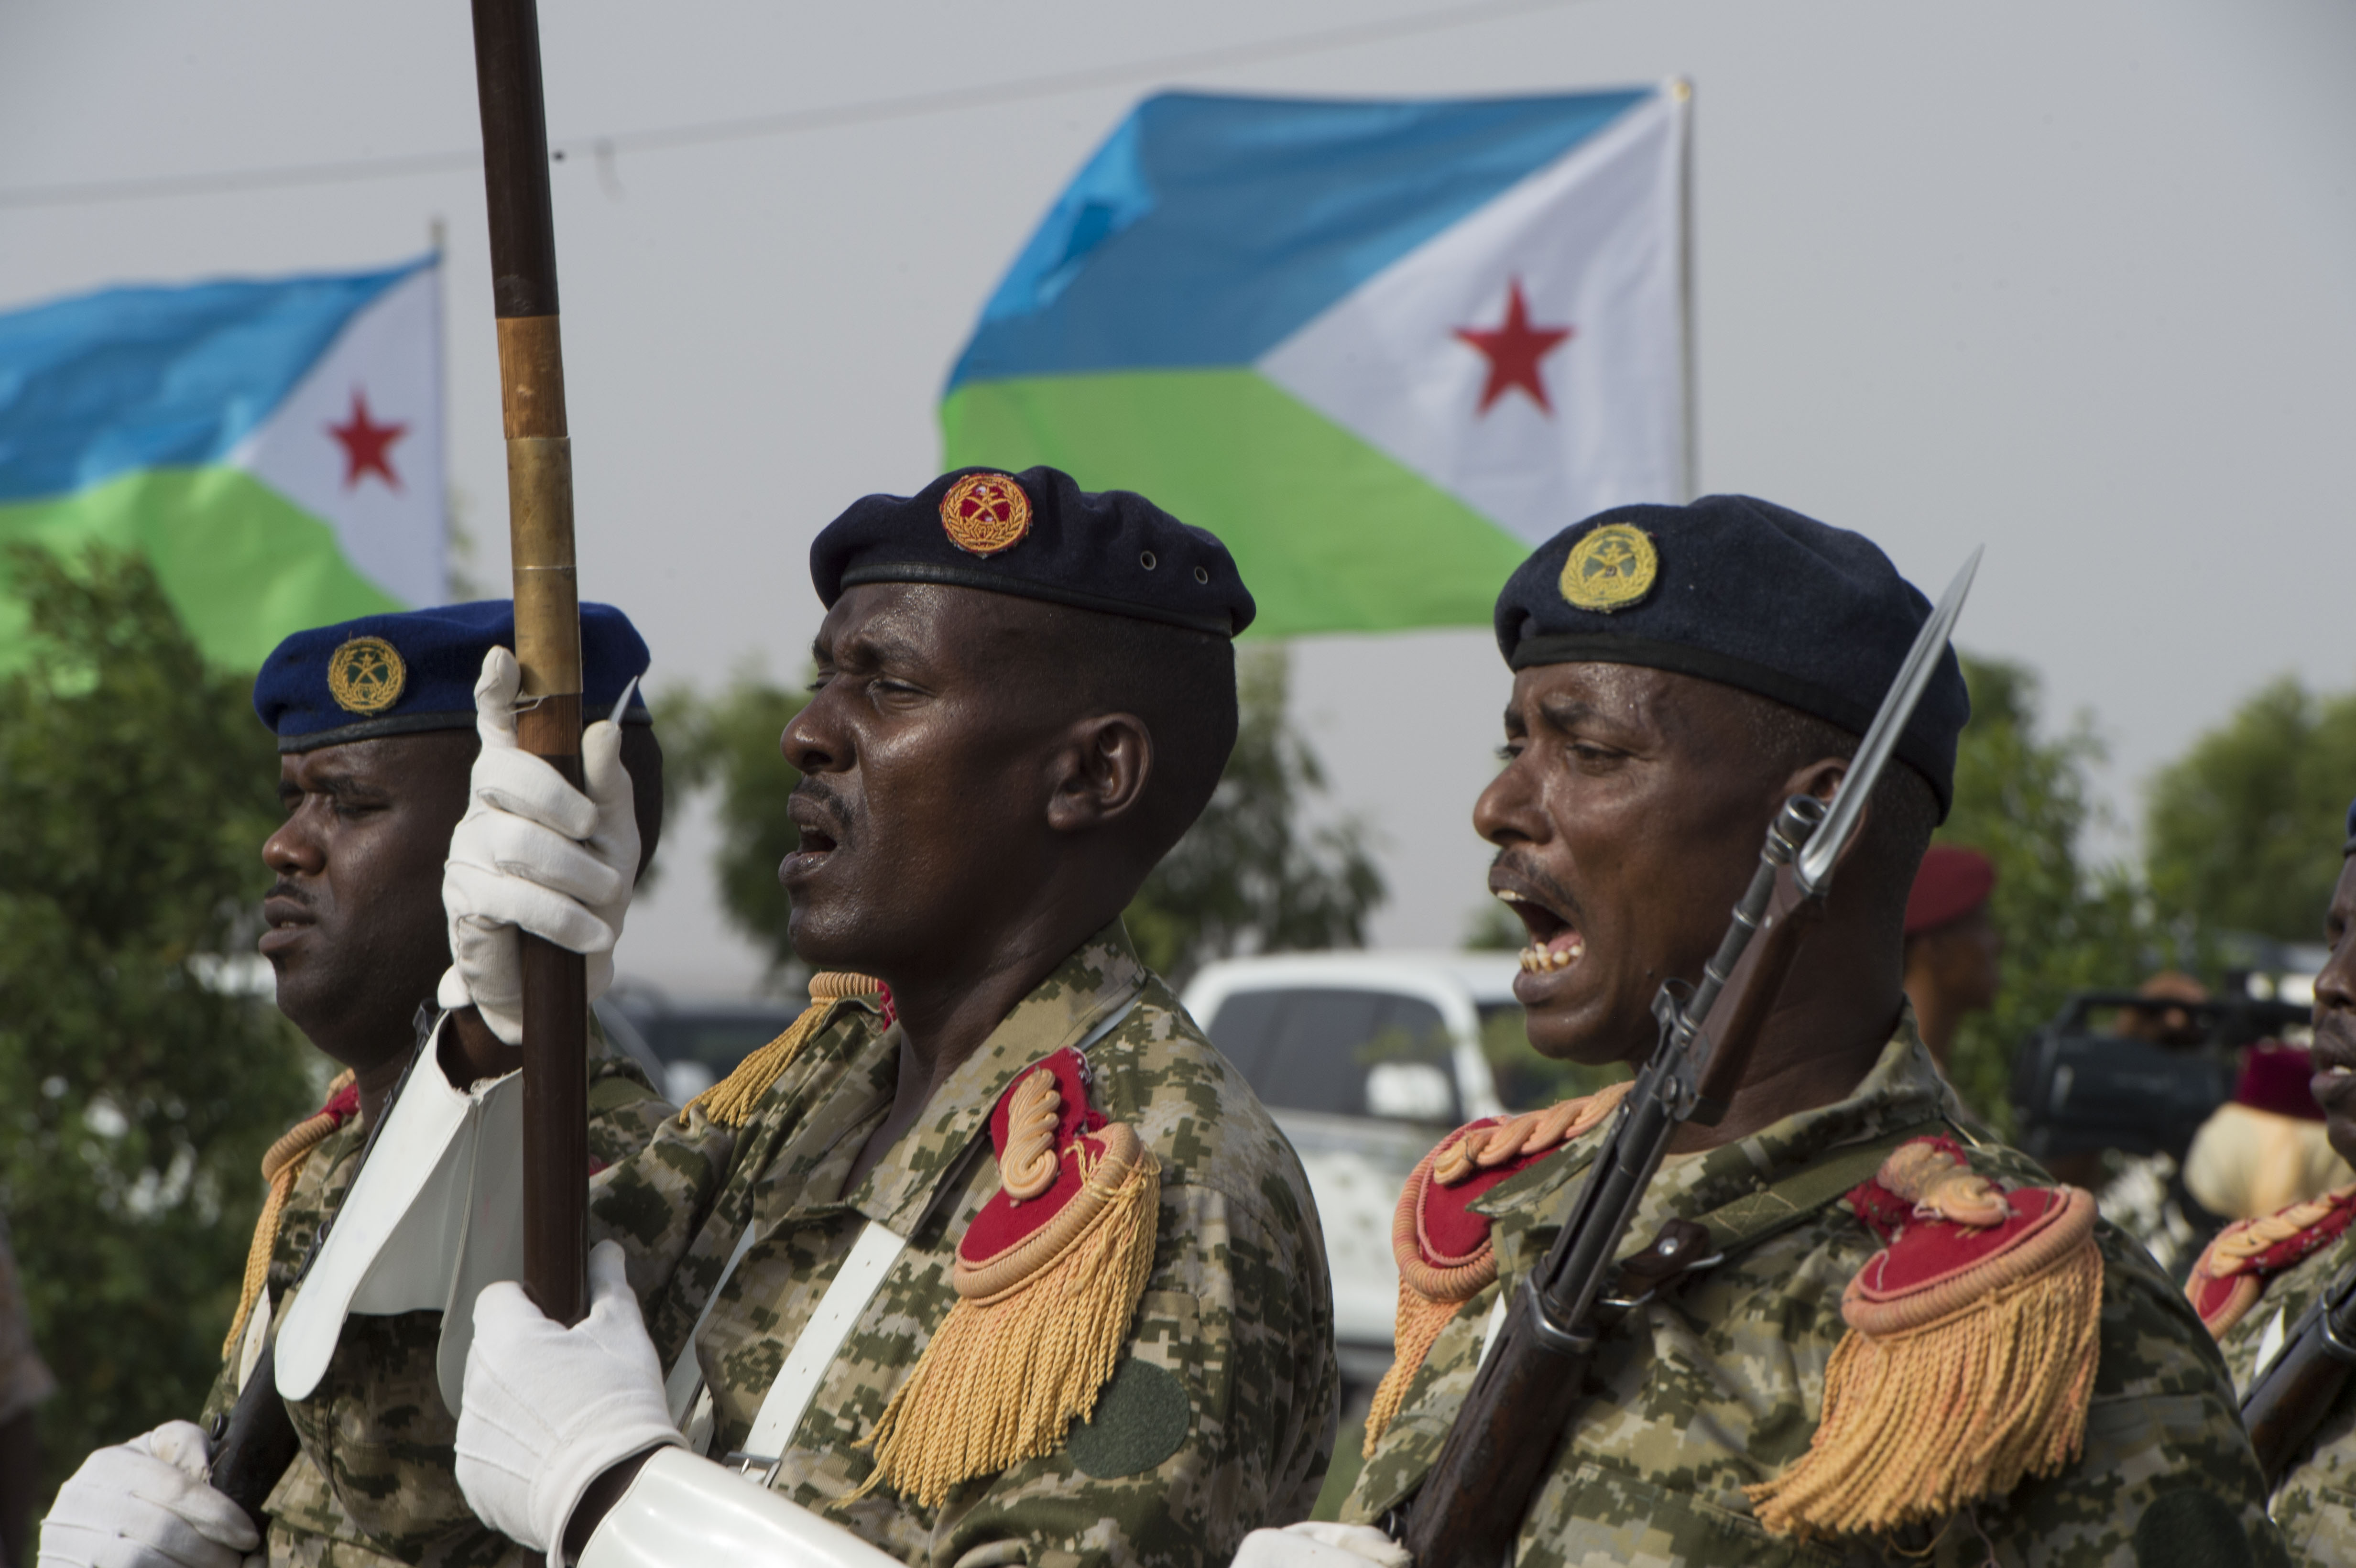 Members of the Djiboutian Armed Forces shout cadences while marching during the Djibouti Independence Day parade June 27, 2016, at Djibouti. Today marked the 39th year since Djibouti declared its independence. (U.S. Air Force photo by Staff Sgt. Eric Summers Jr.)